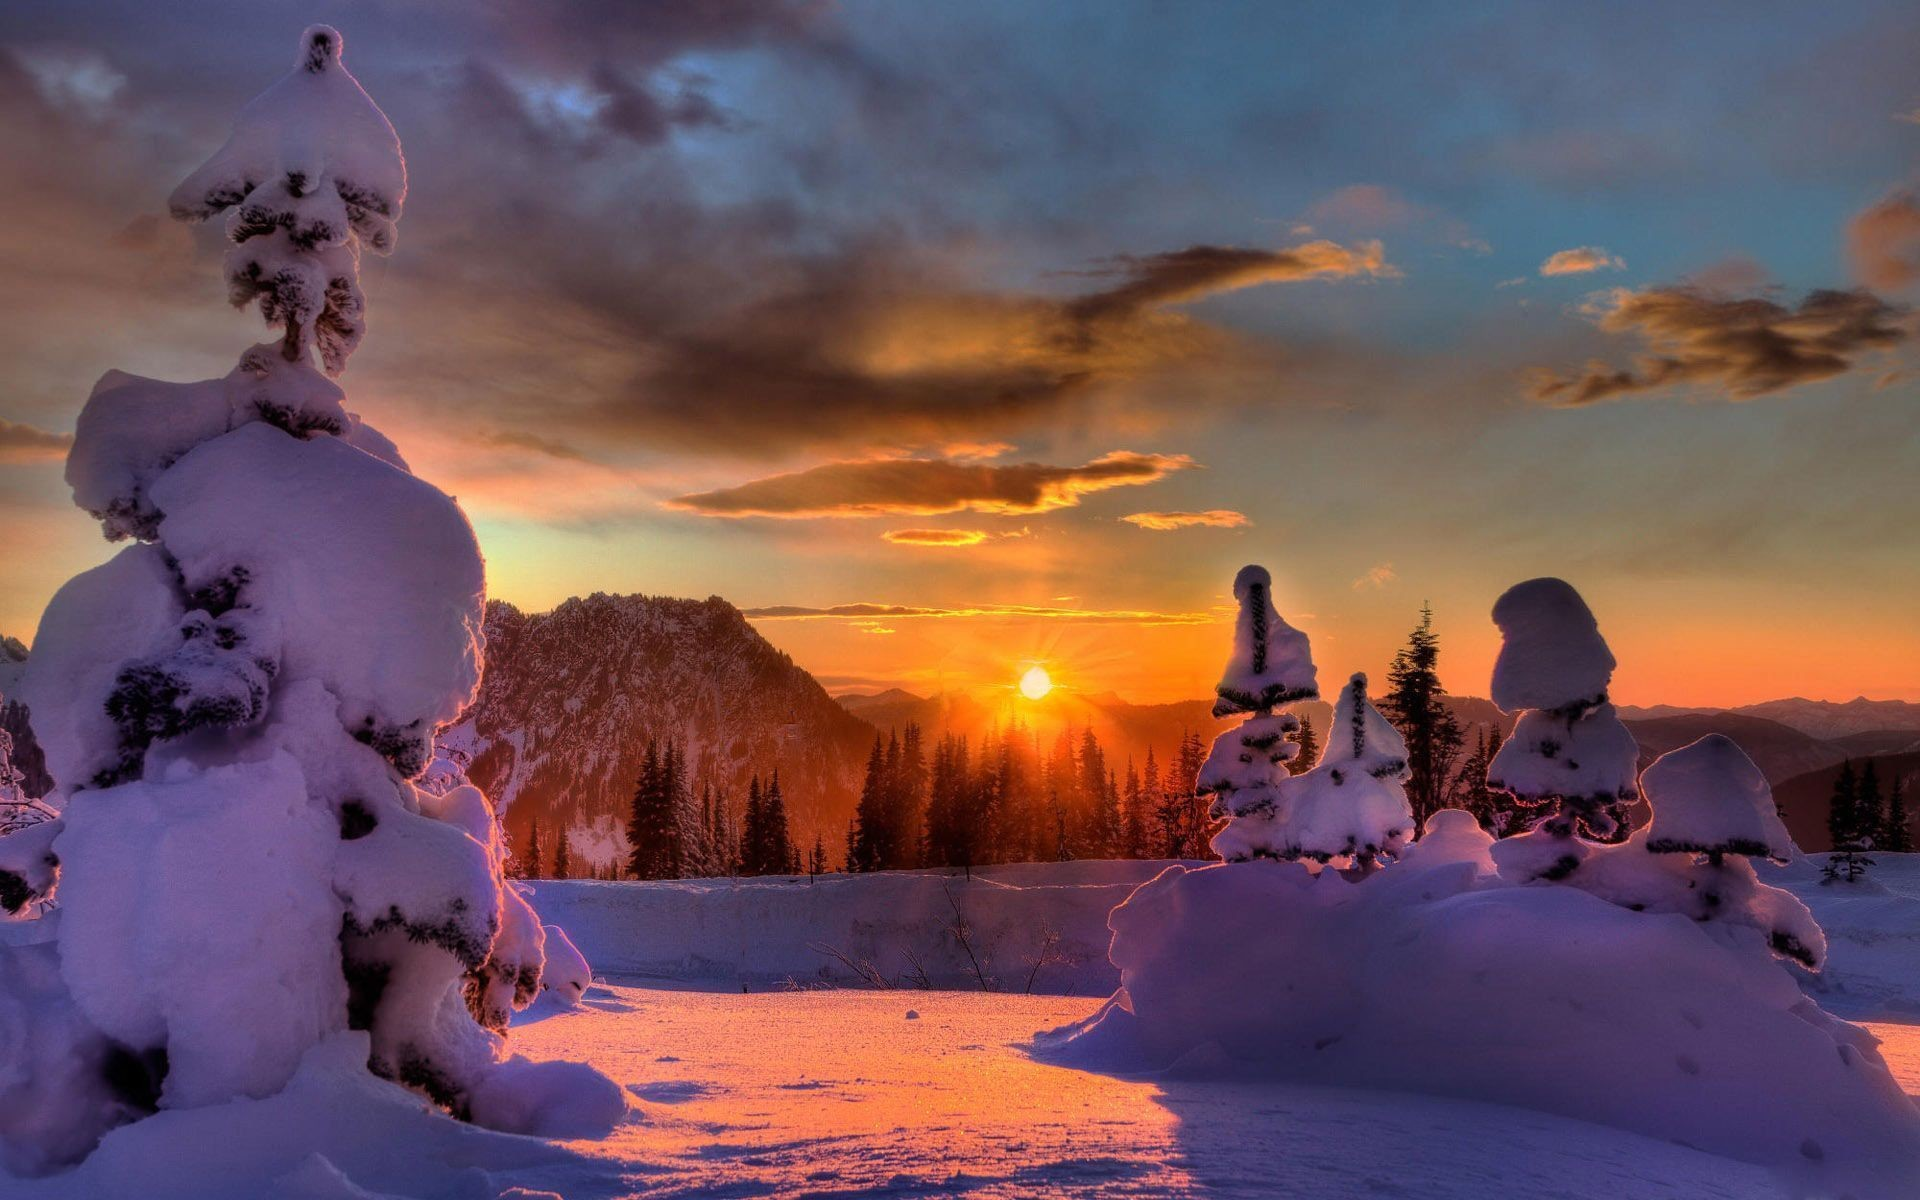 Winter Wallpapers HD, Desktop Backgrounds, Images and Pictures 1920×1200 Winter  Backgrounds For